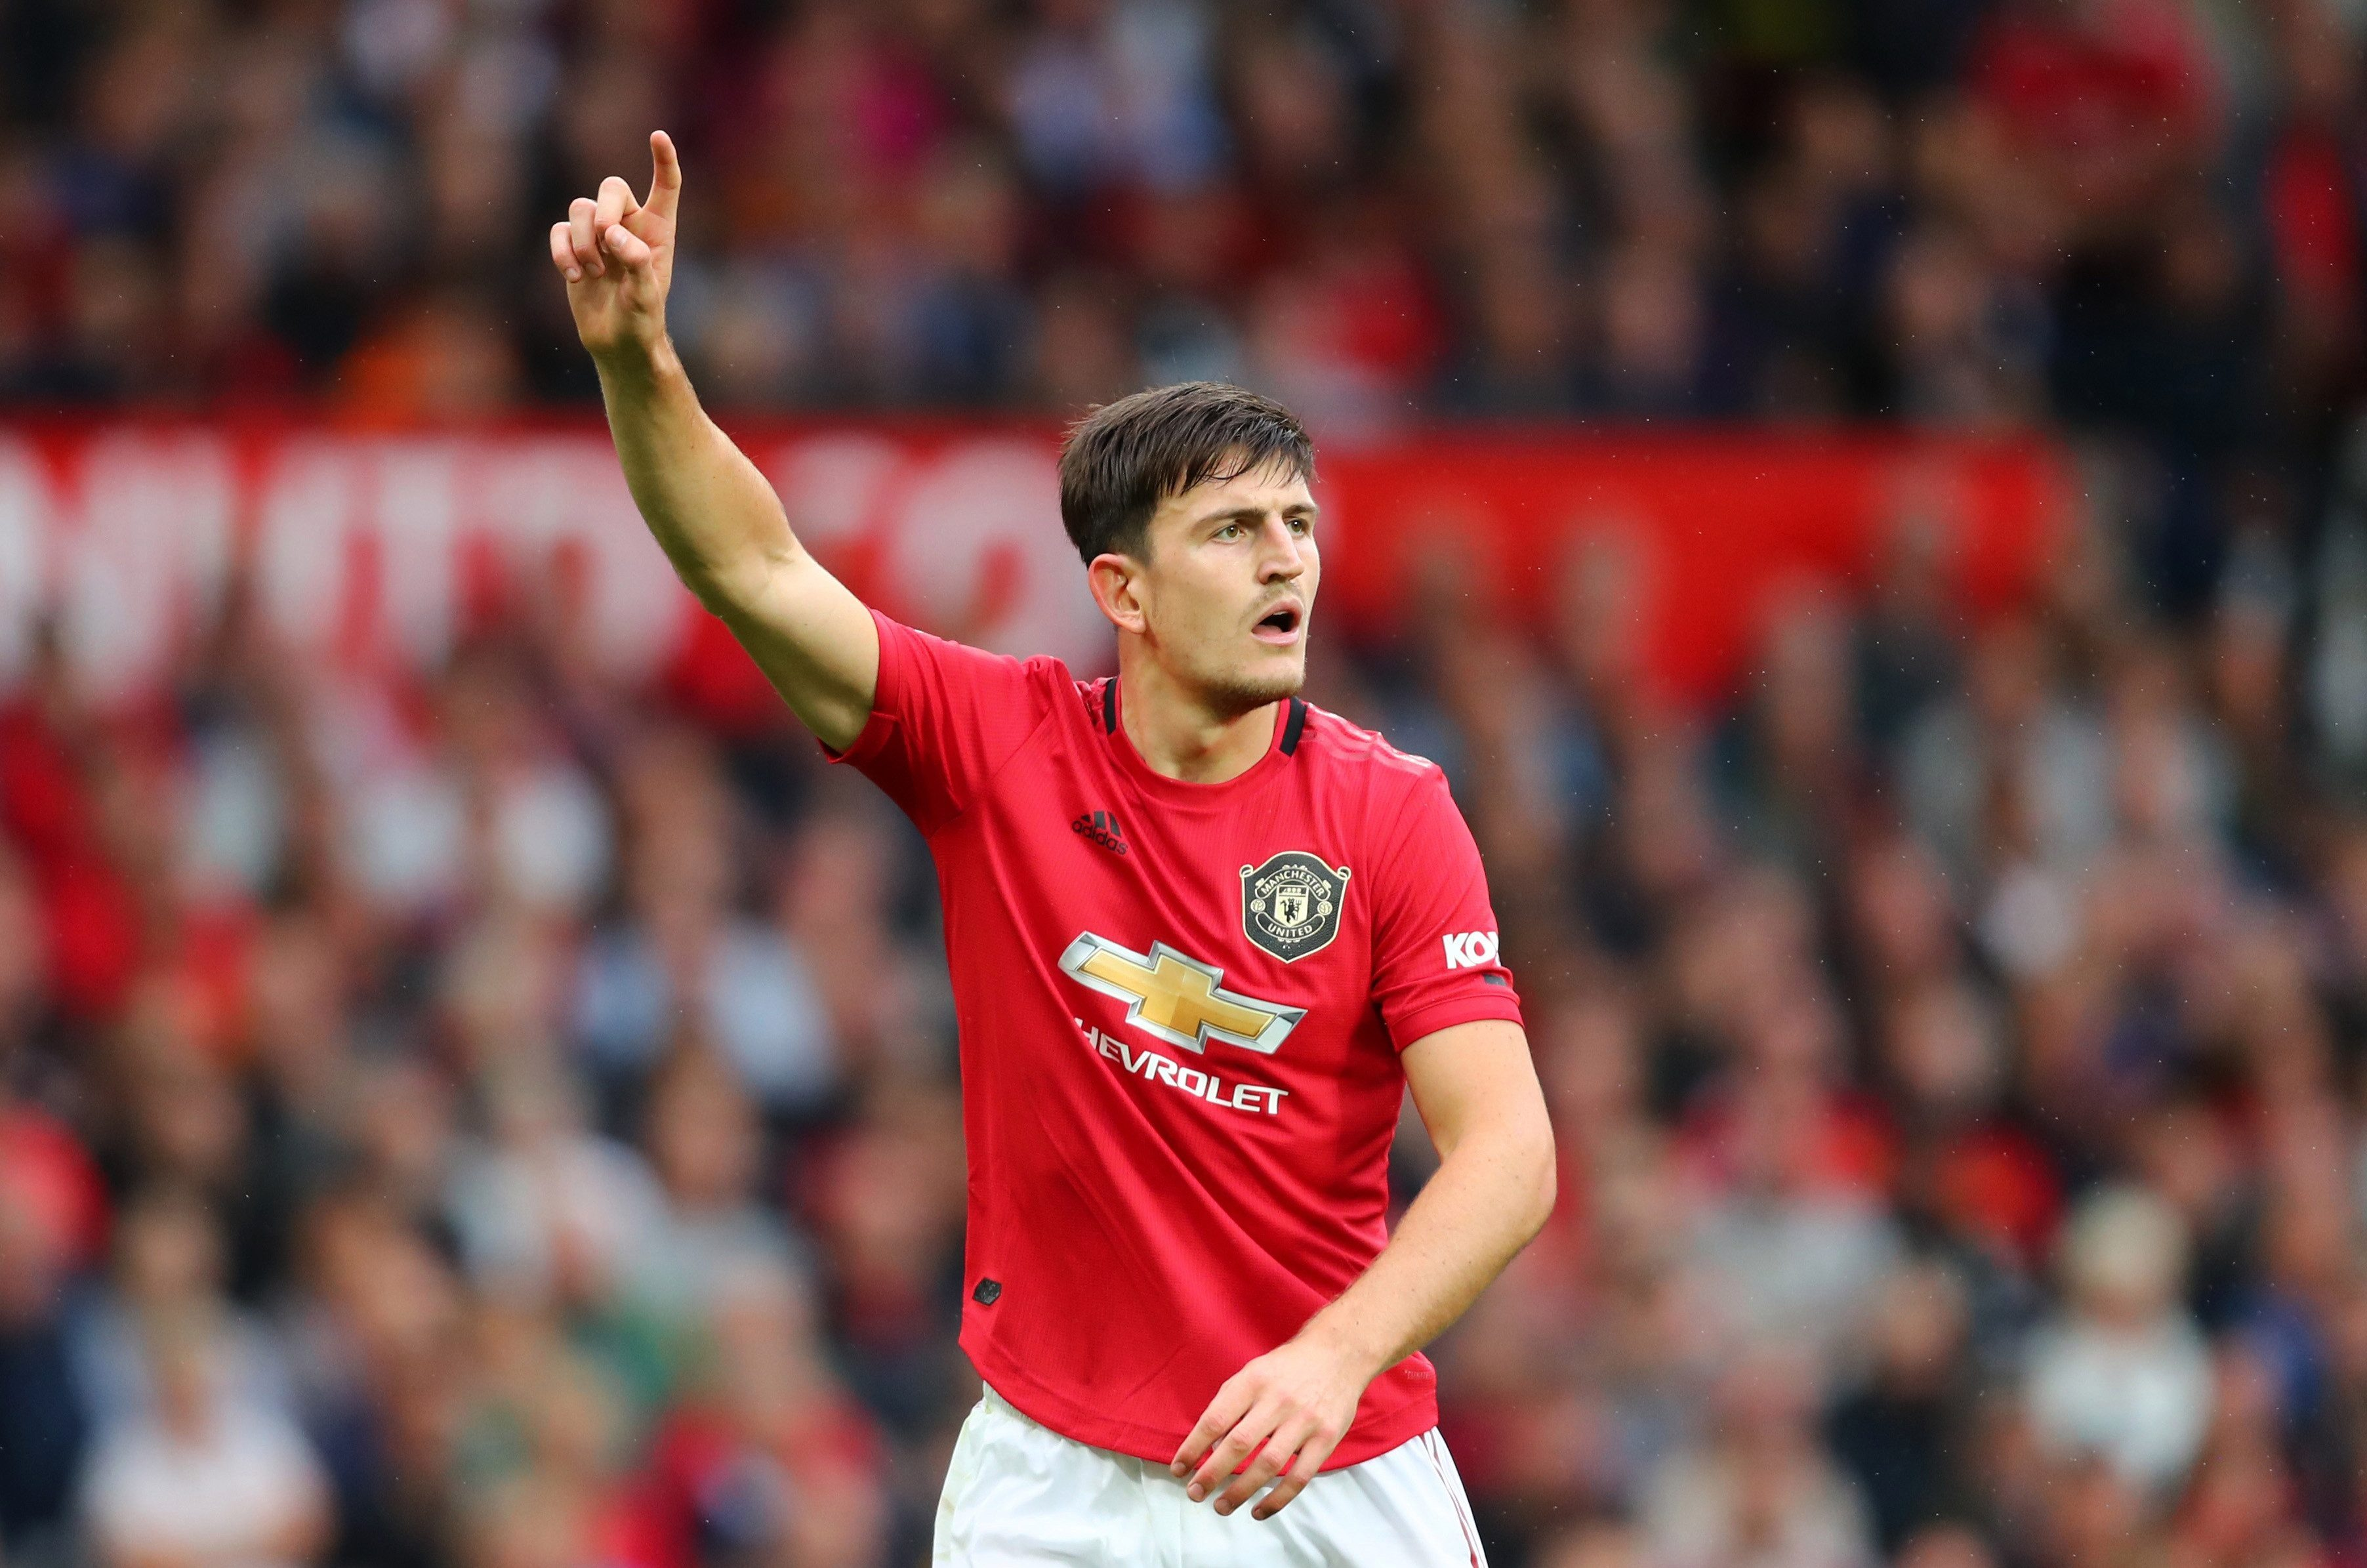 Maguire helped United keep a clean sheet against Chelsea